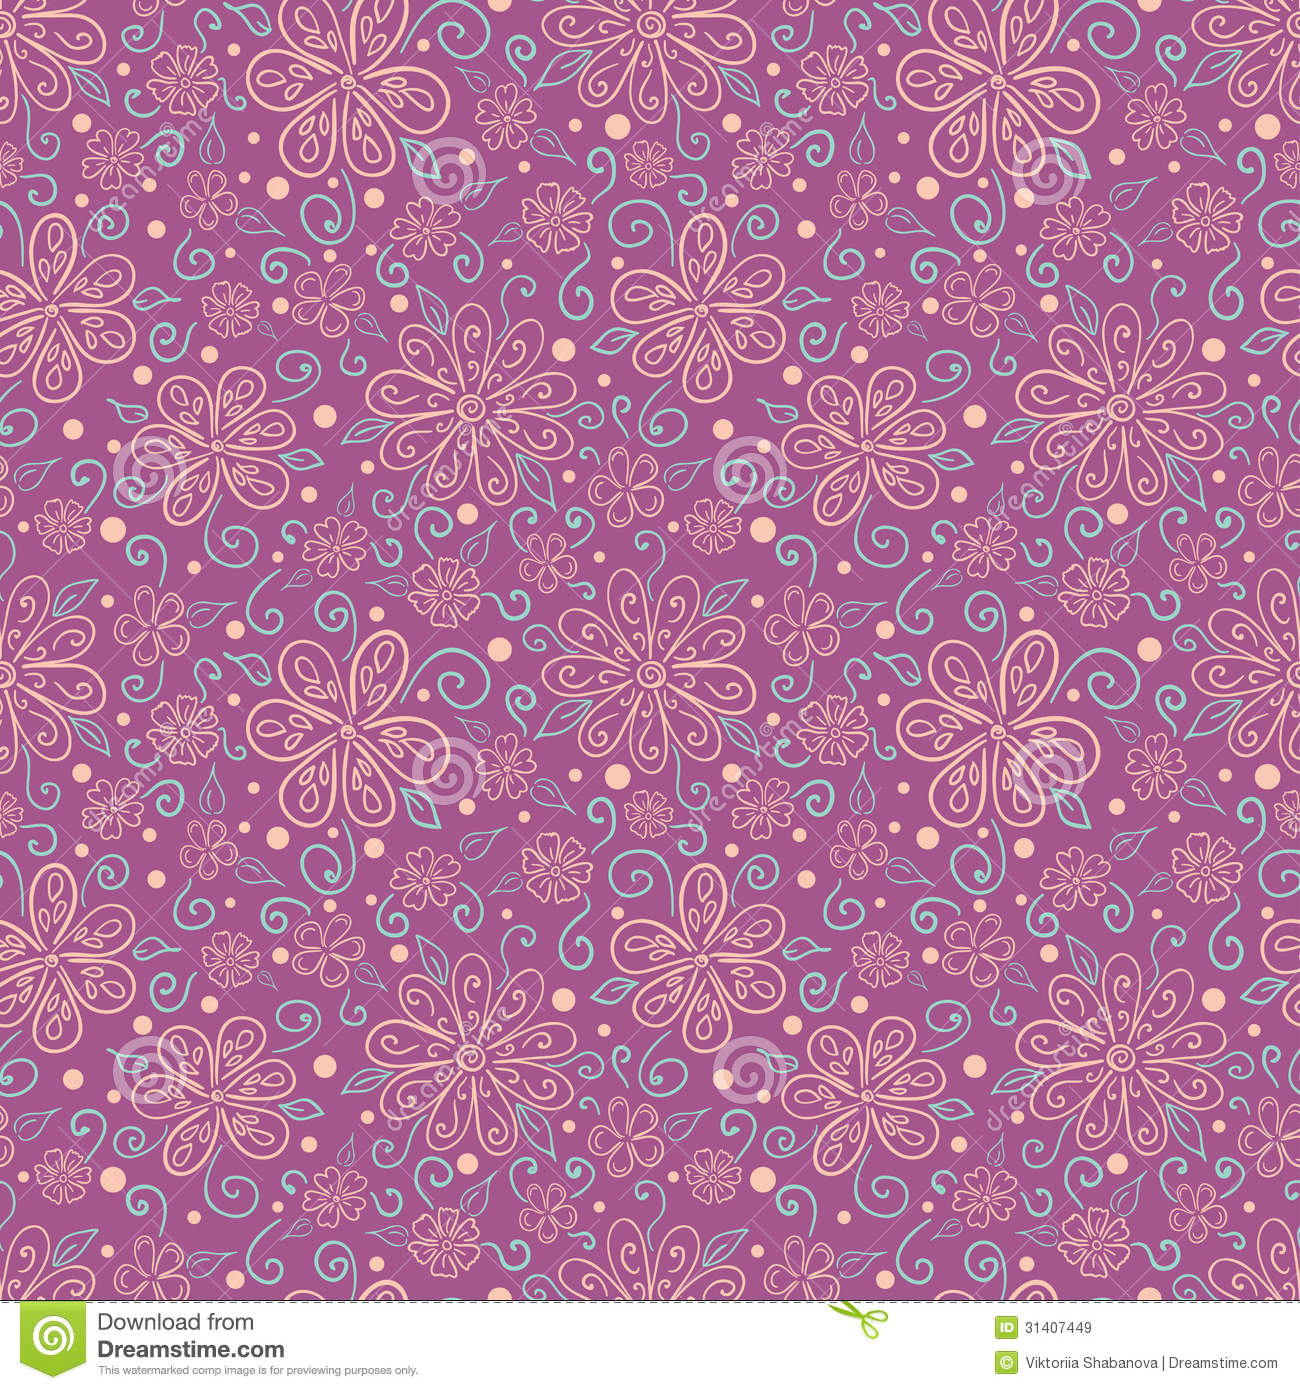 seamless floral pattern with hand drawn stylized flowers